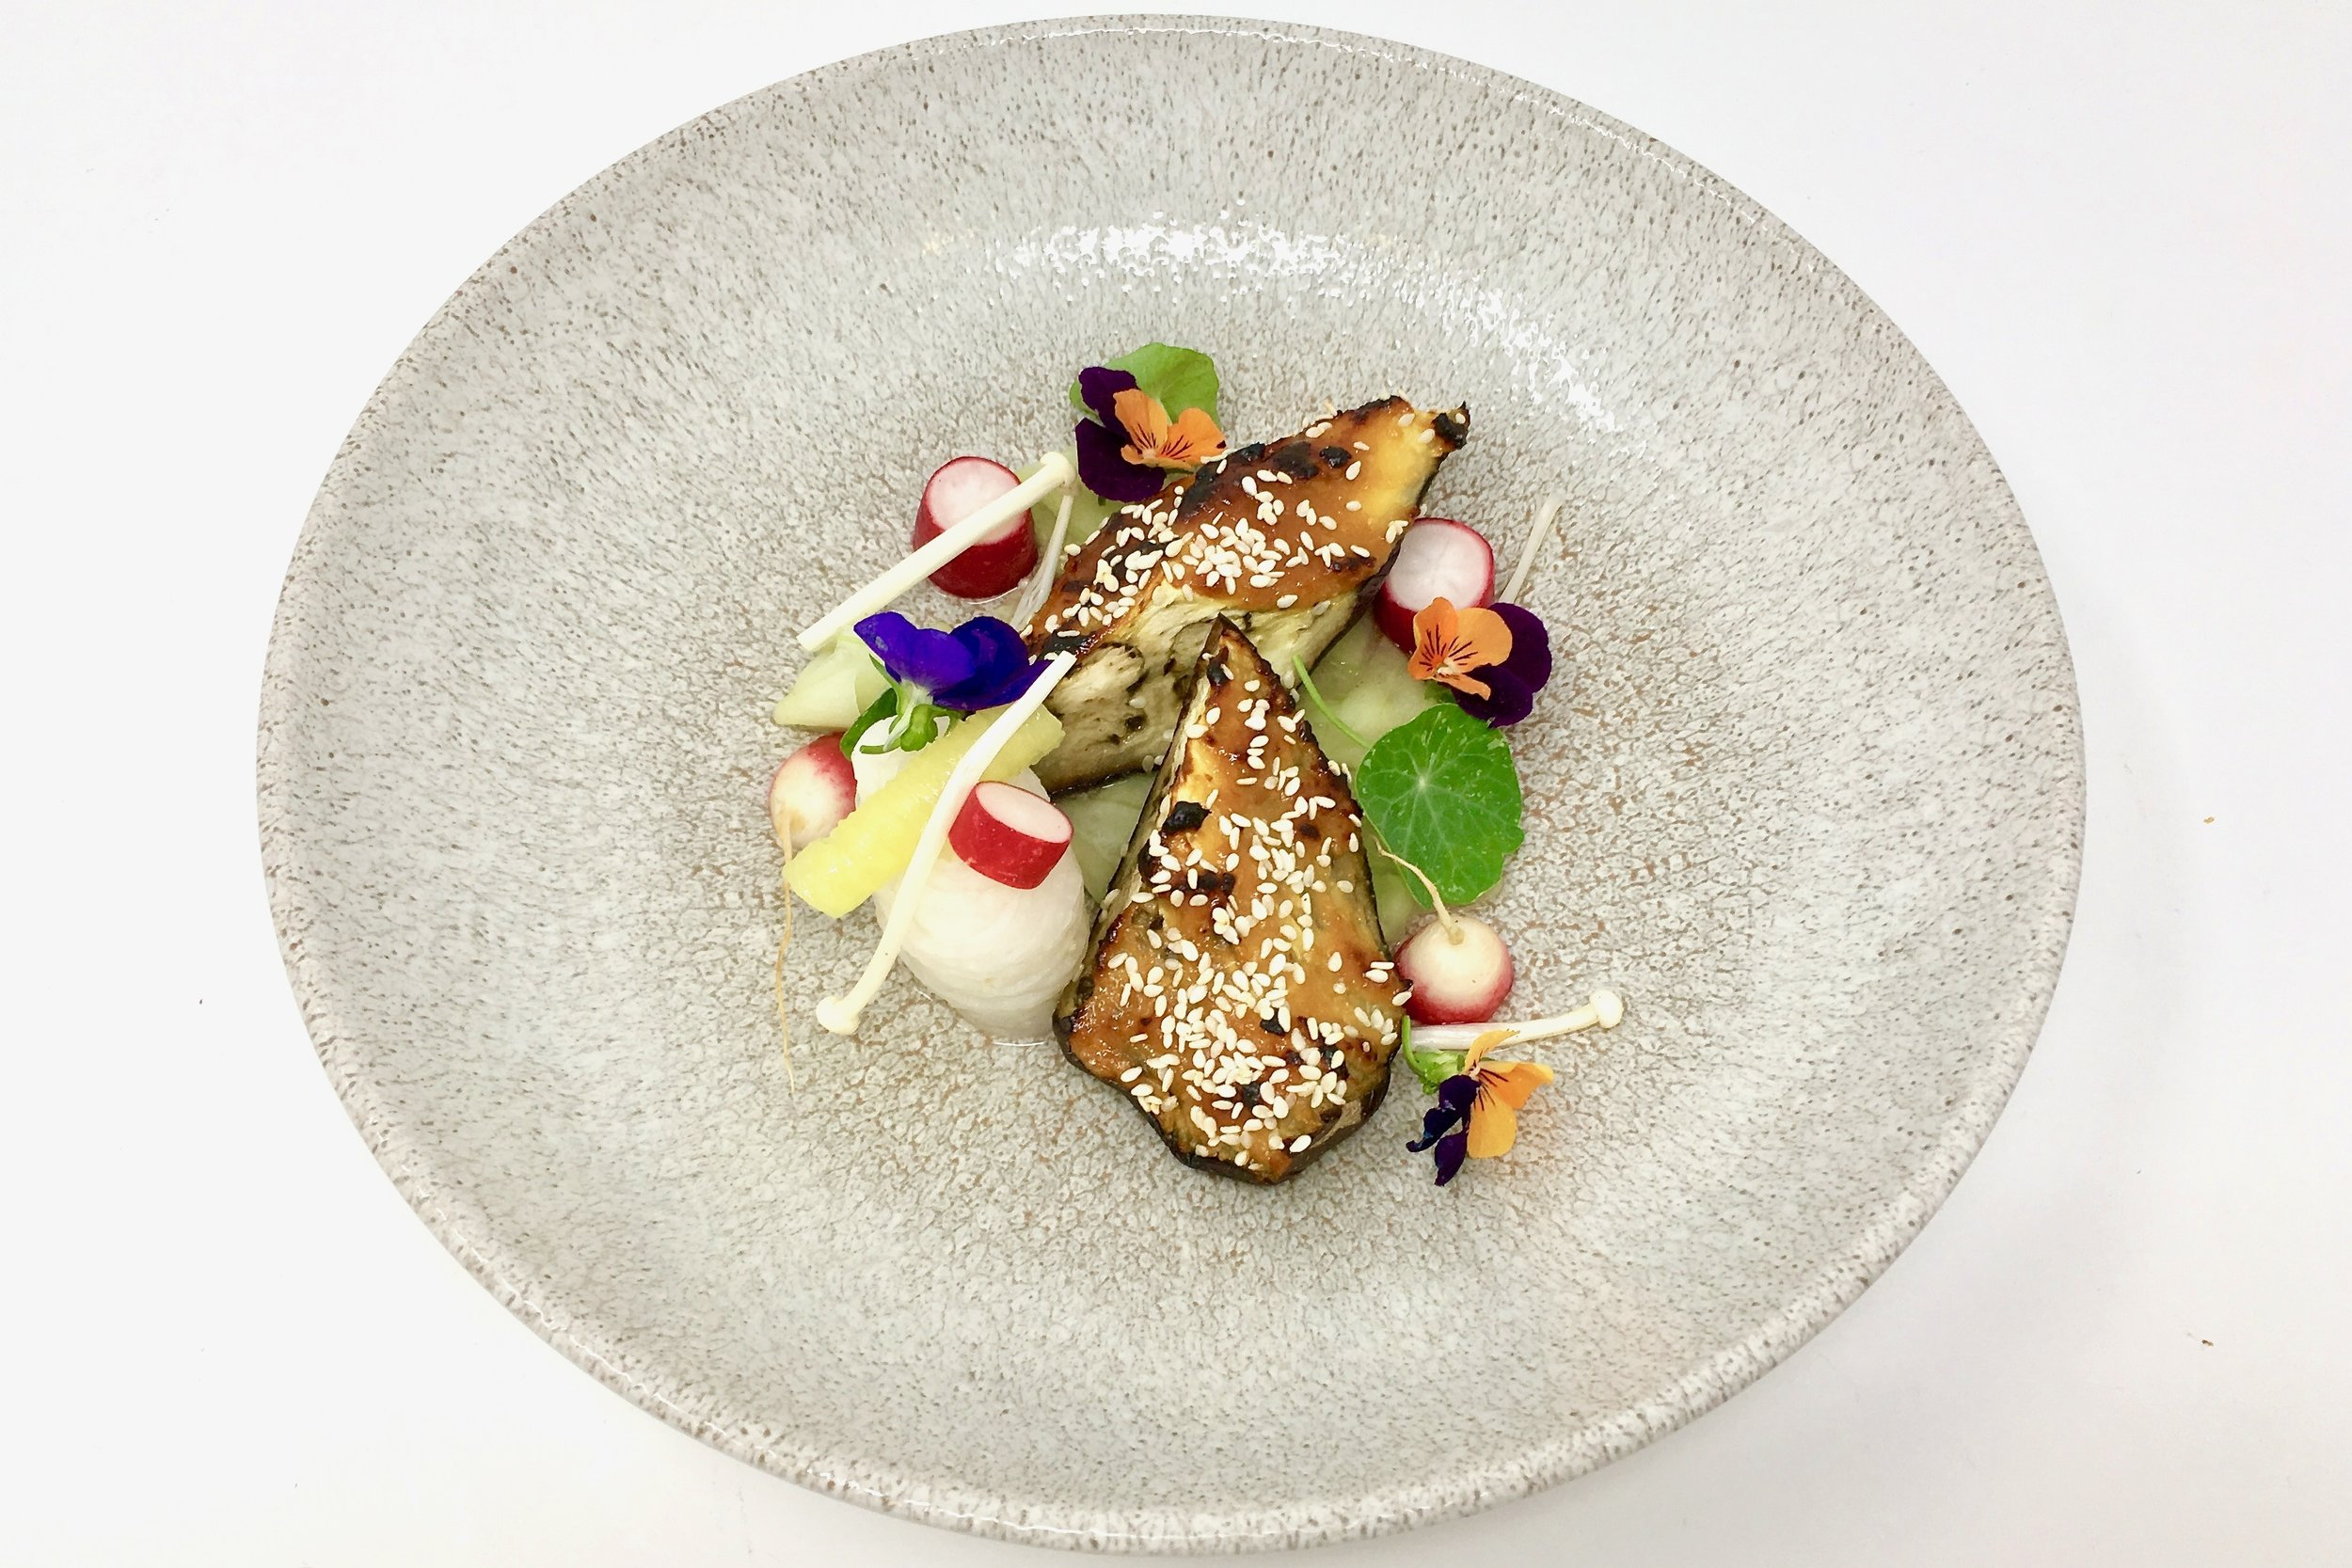 Chef's miso aubergine with pickled cucumber